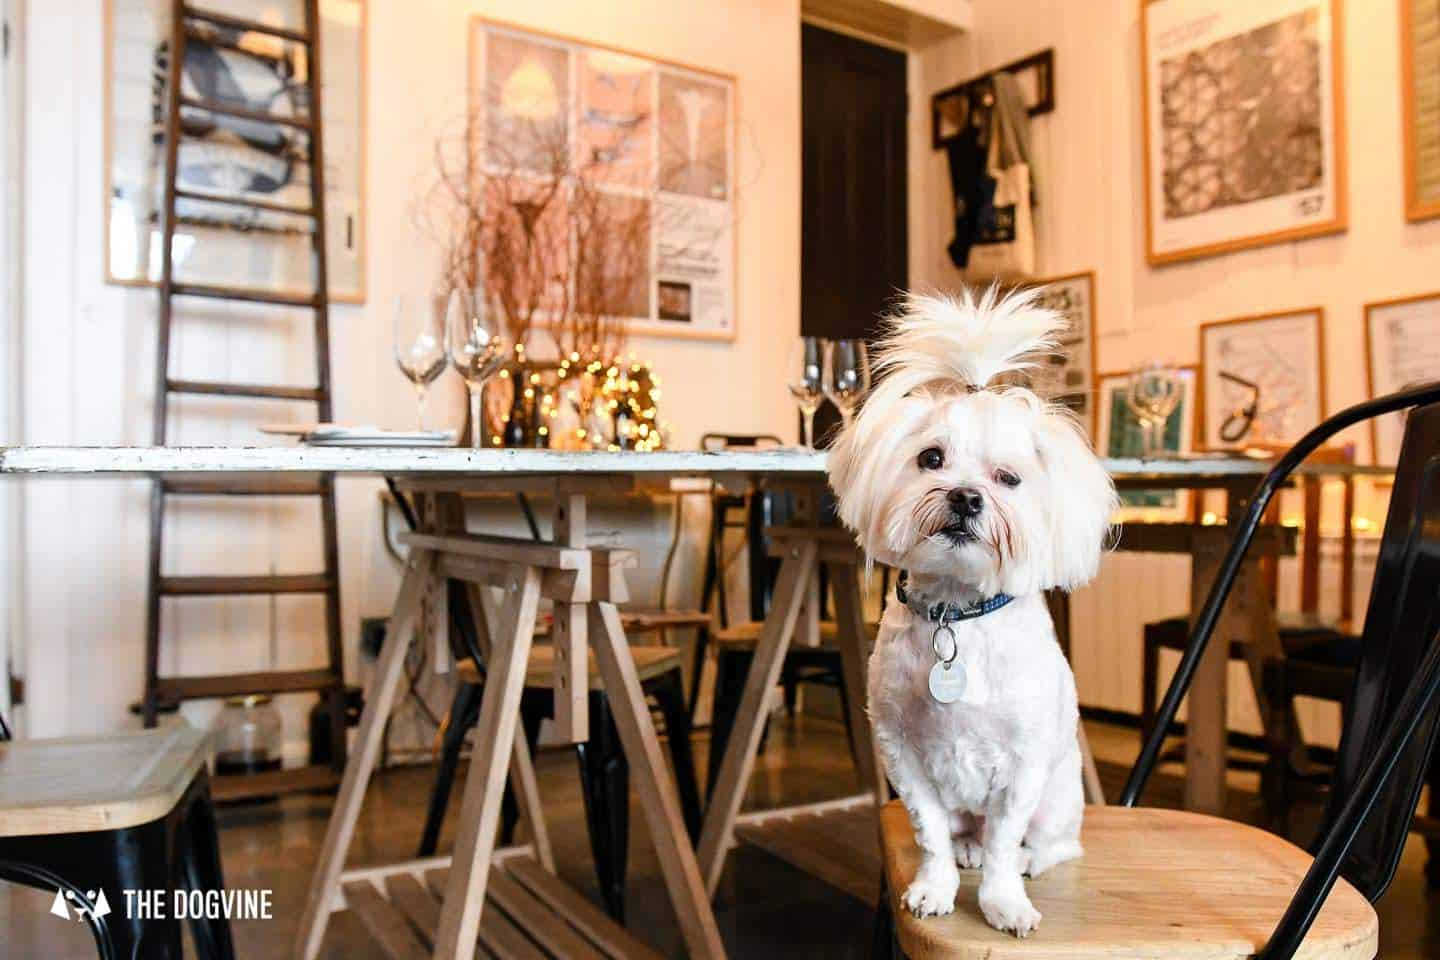 The Best of Dog-friendly St Johns by Milo the Maltese - L'Oculto 2